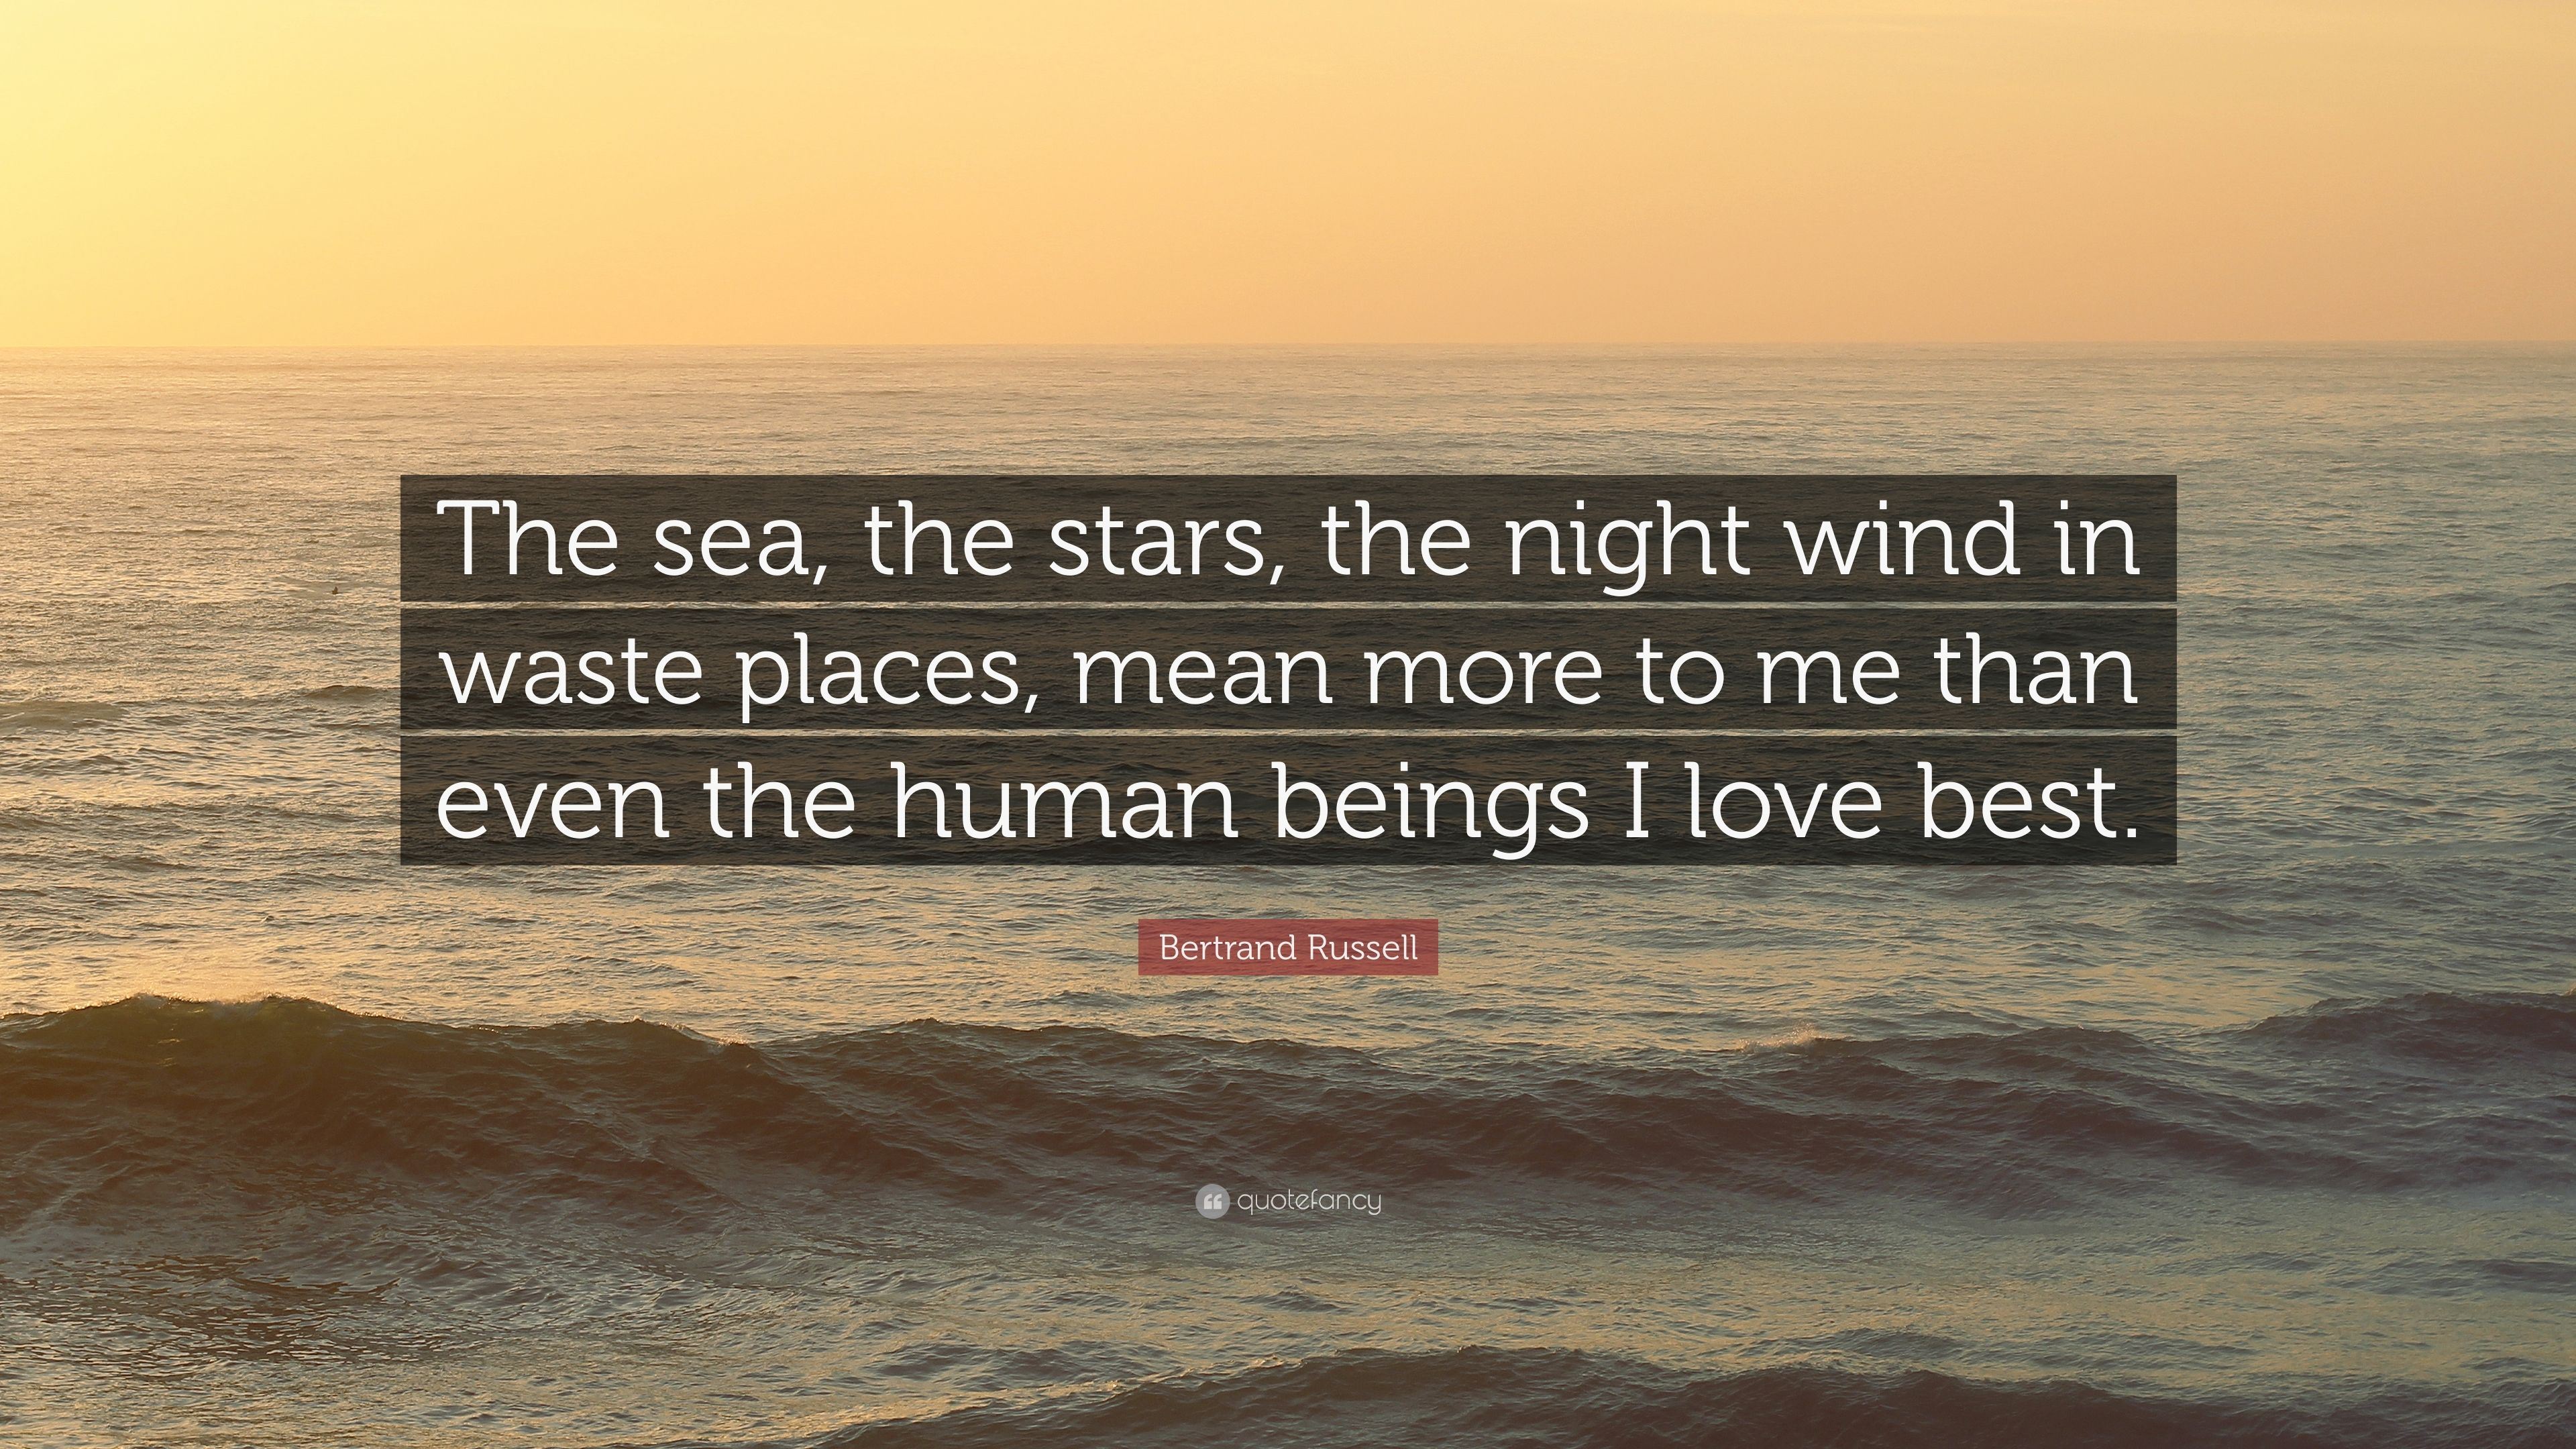 Bertrand Russell Quote: U201cThe Sea, The Stars, The Night Wind In Waste